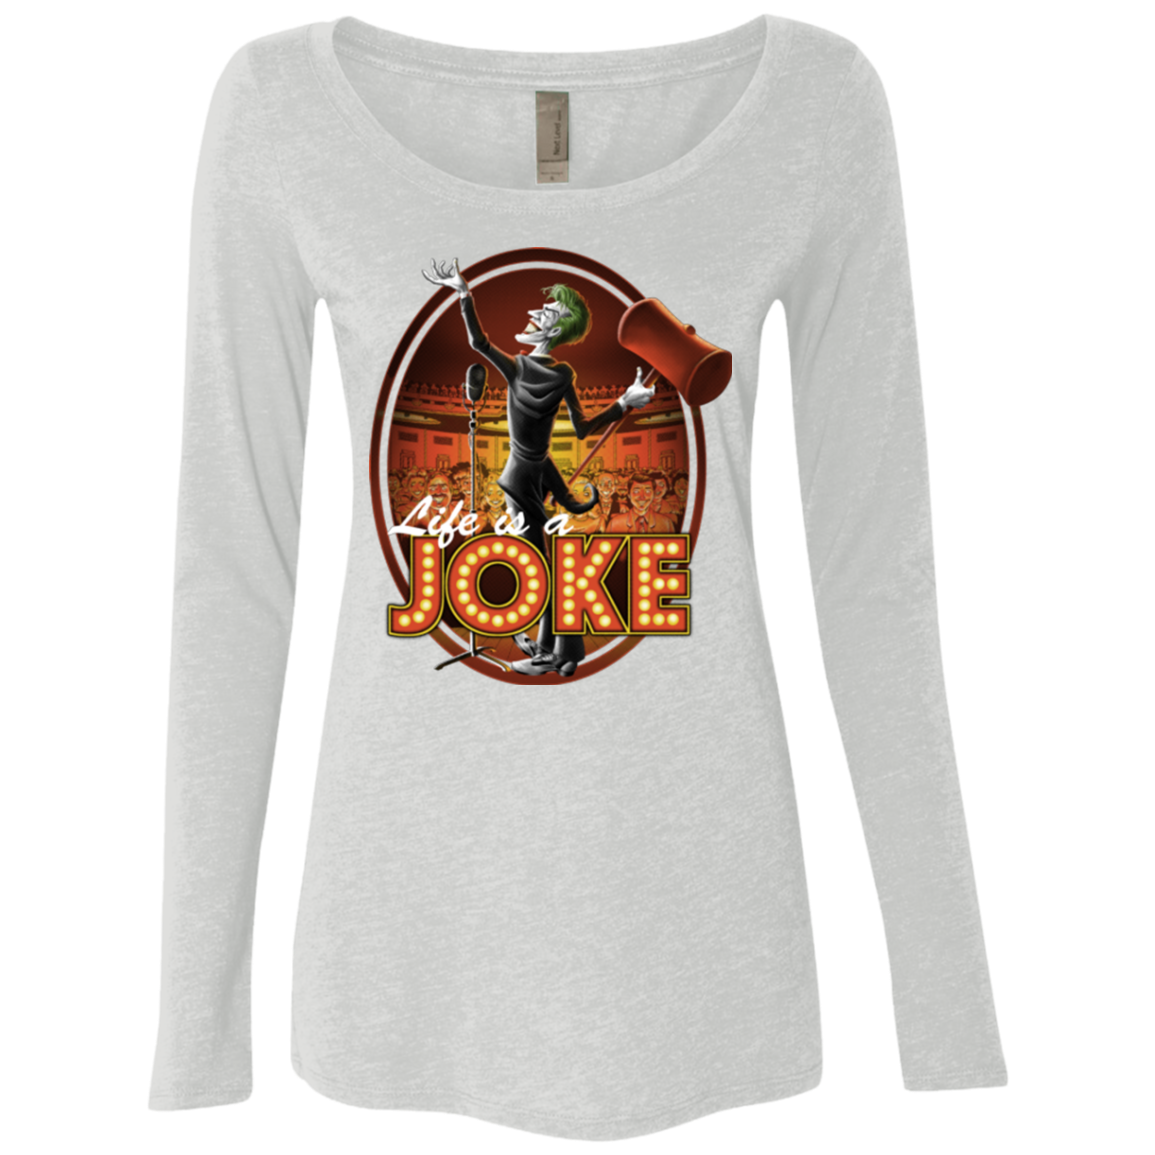 Life Is A Joke Women's Triblend Long Sleeve Shirt